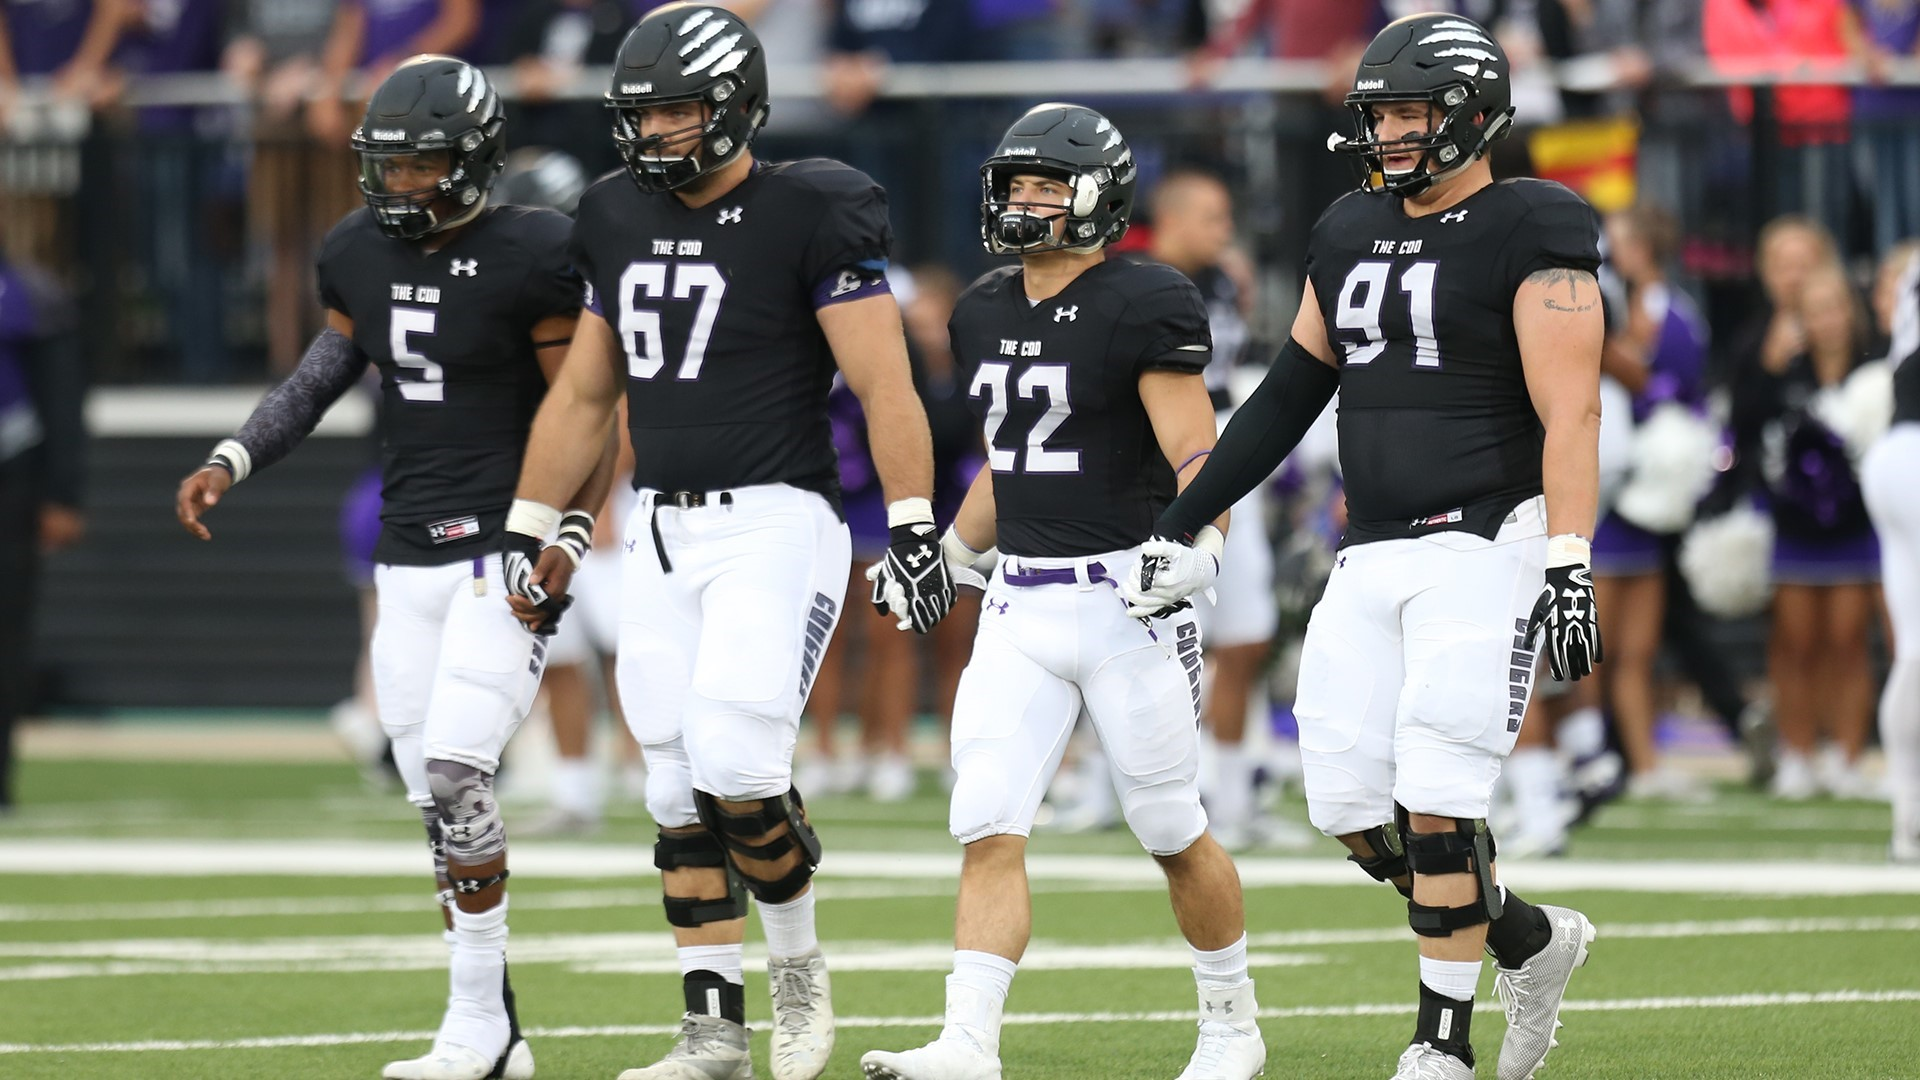 7 8 Usf Football Team To Face U Mary In Nsic Matchup On Saturday In